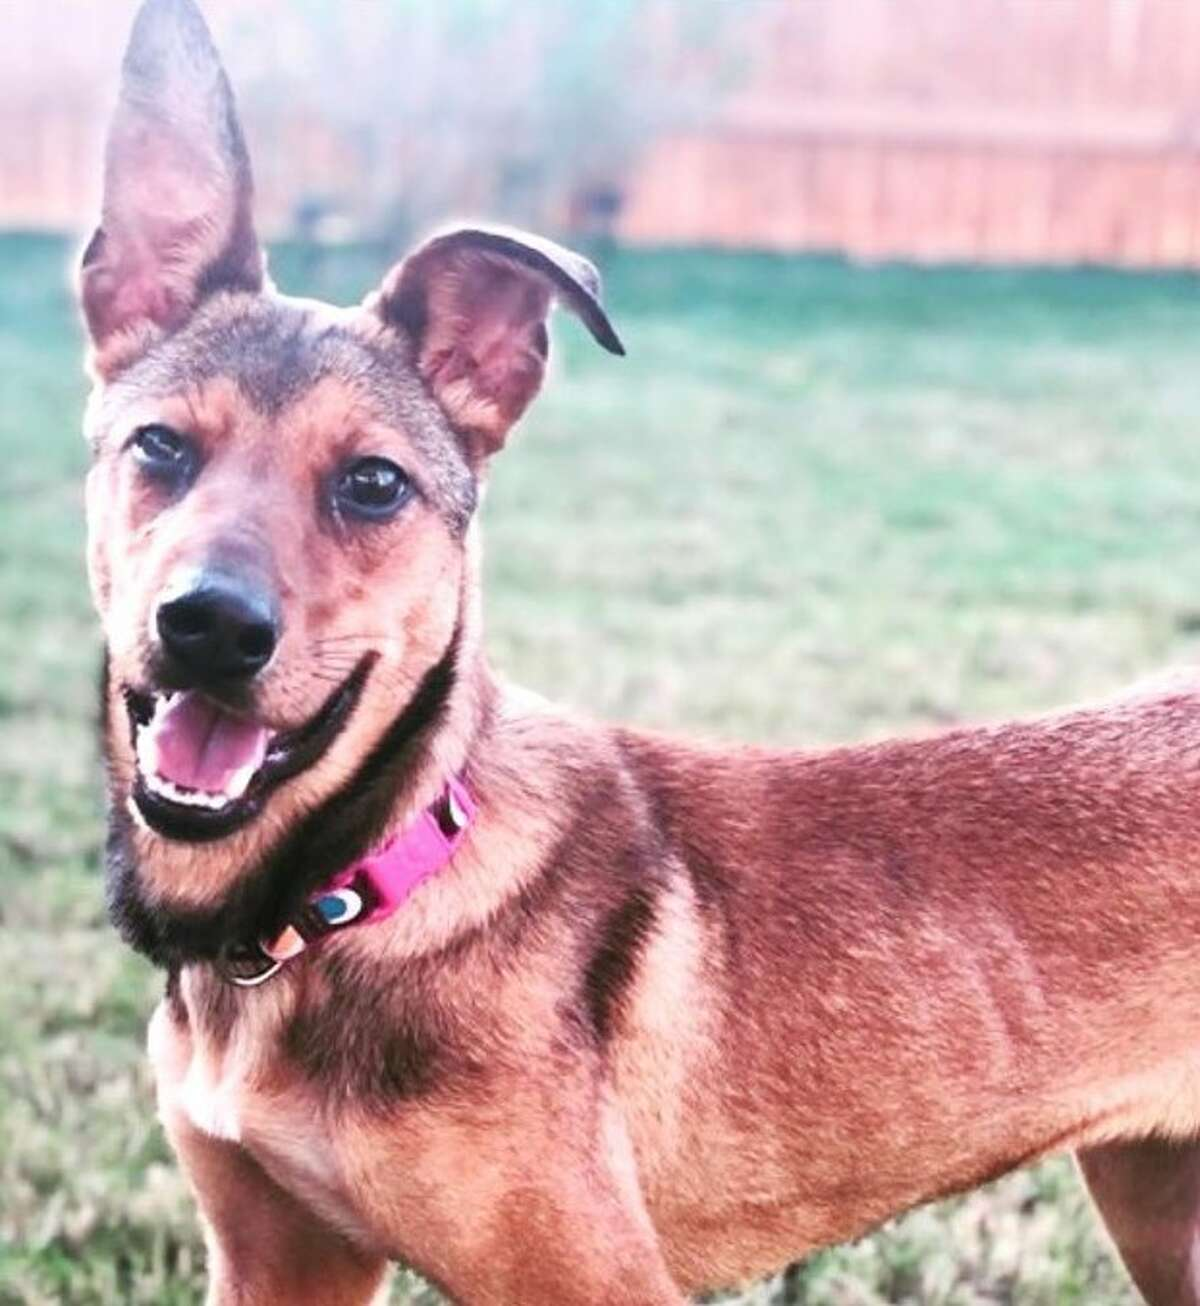 Izzy, who was formerly called Jane by the Seguin Animal Services staff, has loved her new home after her adoption in August. You can find your furbaby at the Pumpkins and Puppies adoption event this Saturday.